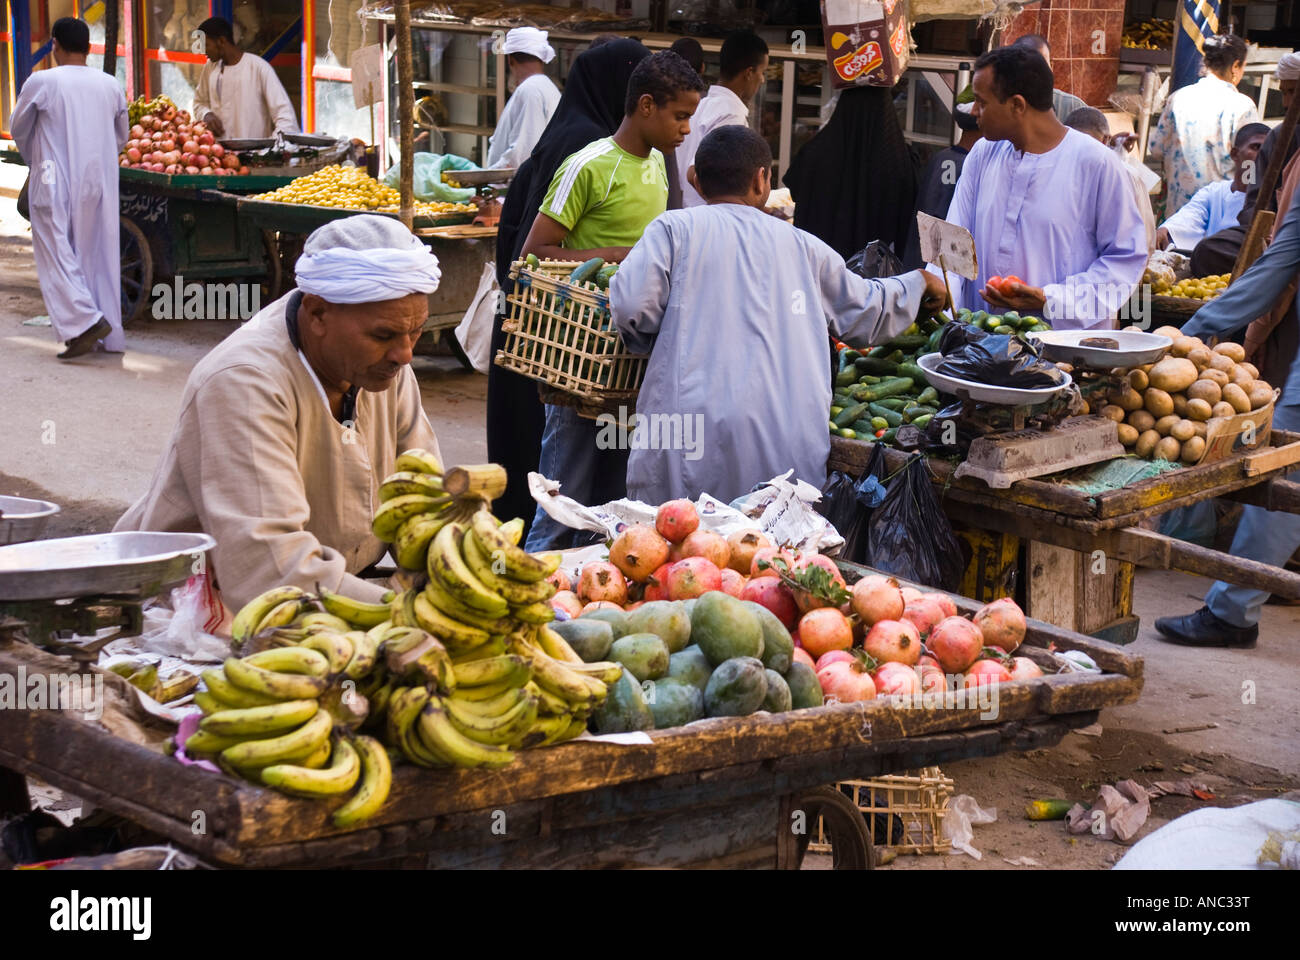 Egypt - Luxor local market souk selling fruit and vegetables Stock Photo